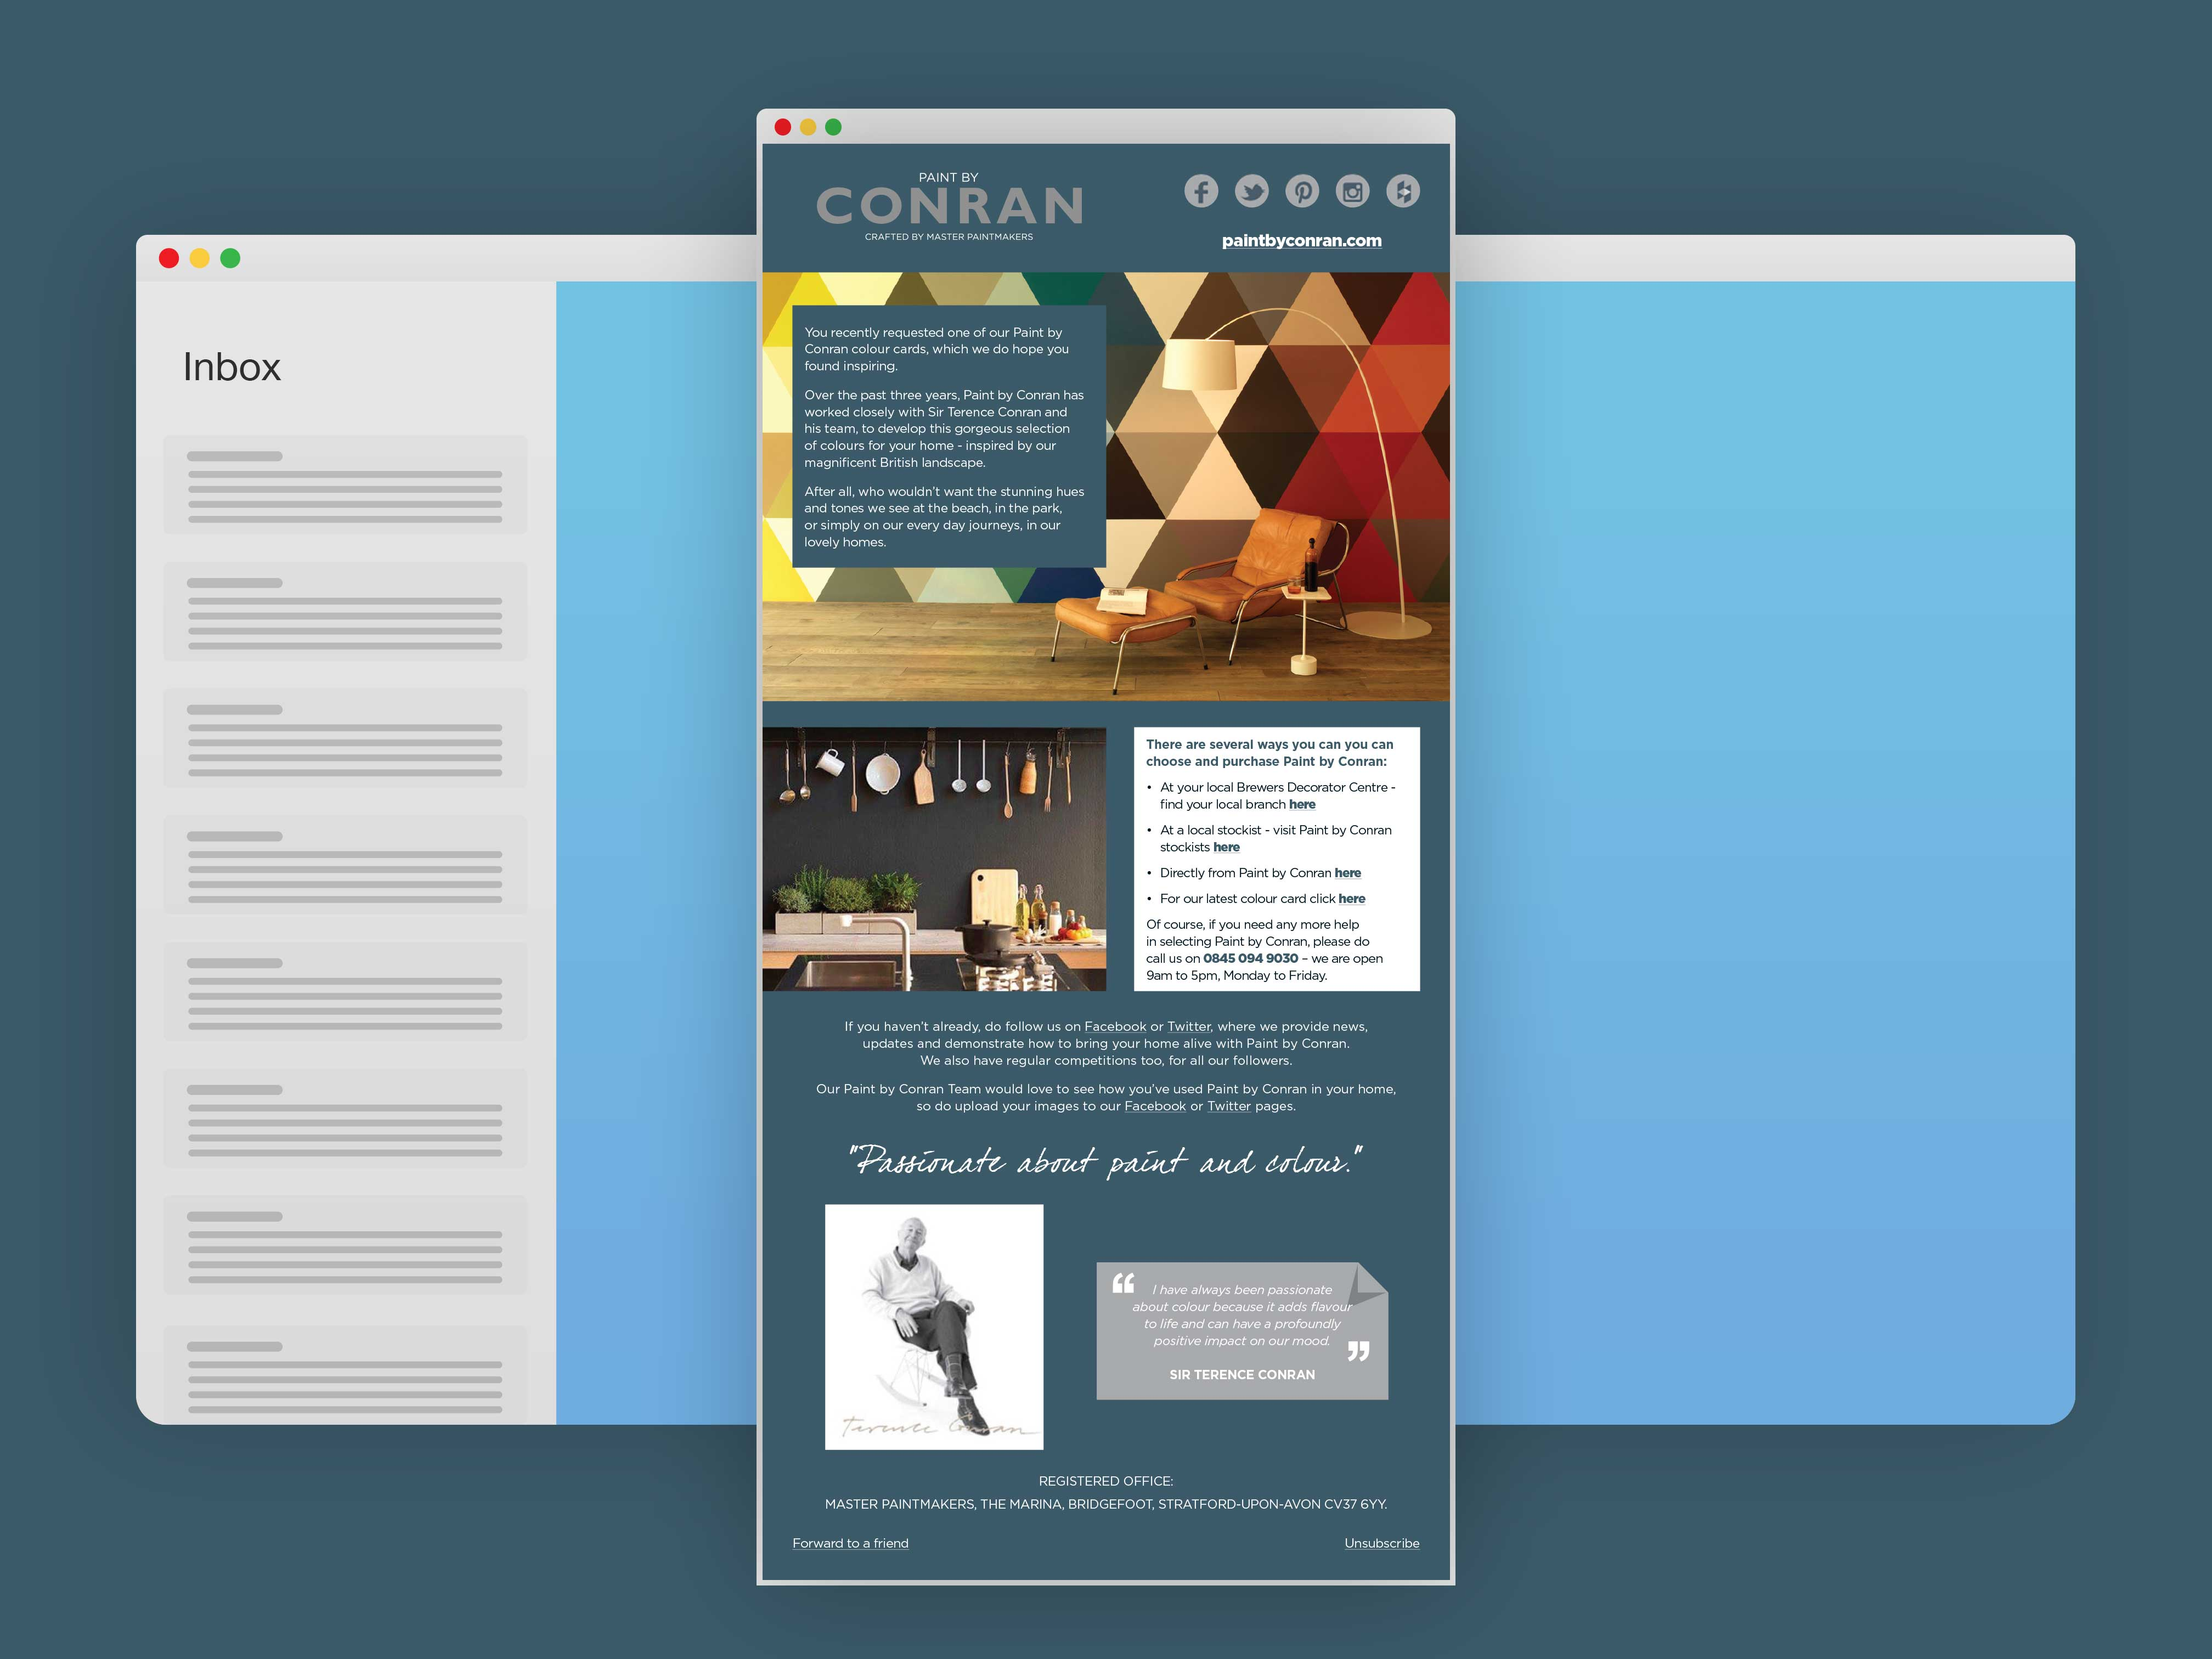 Display of Conran Email Template